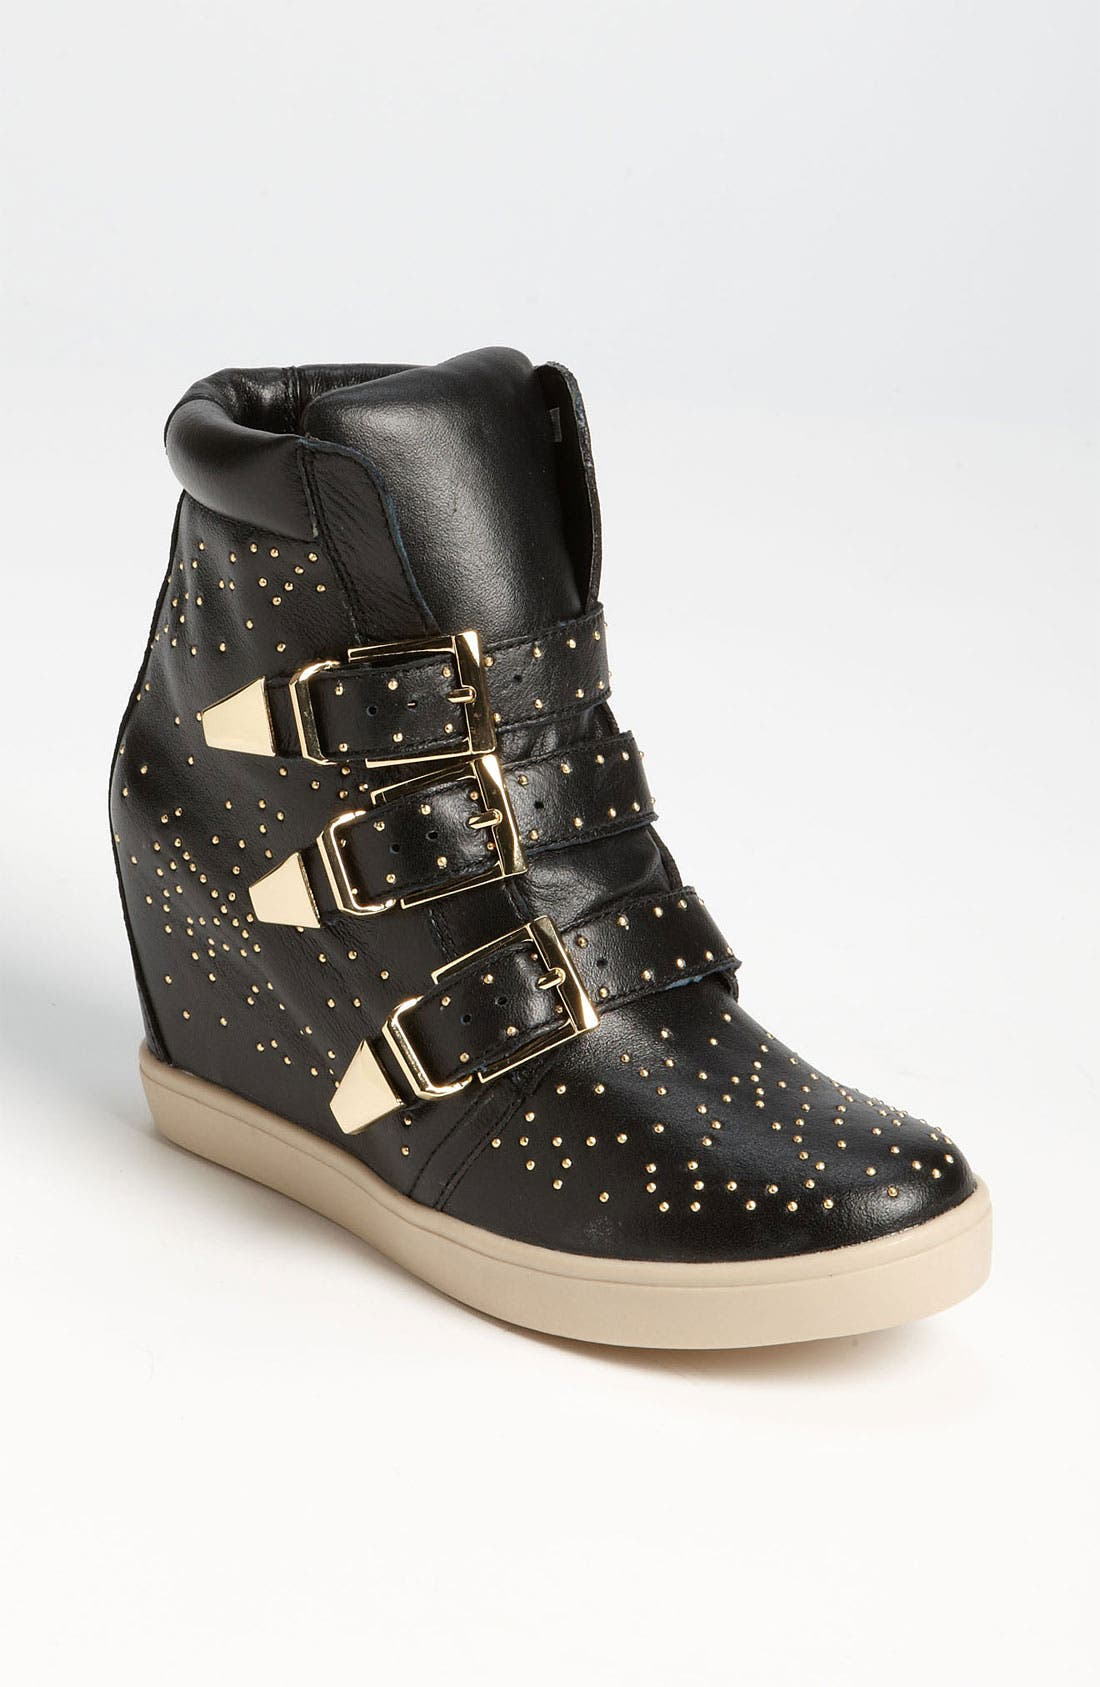 Main Image - Steven by Steve Madden 'Jeckle' Wedge Sneaker